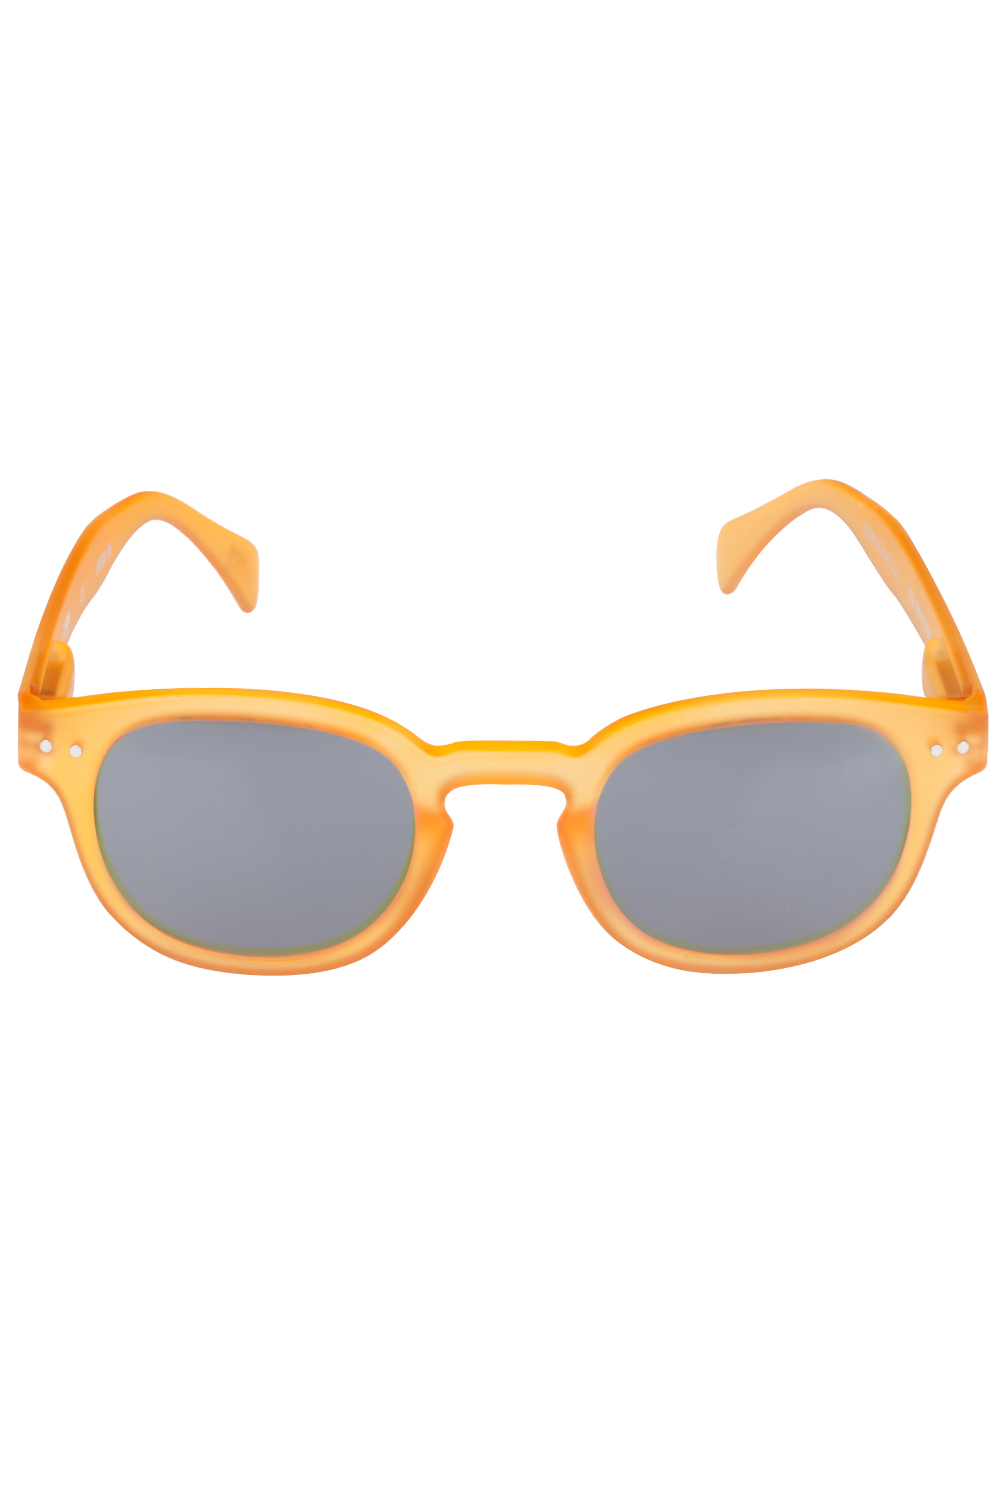 See Sunglasses  see concept sunny yellow sunglasses yellow 365ist